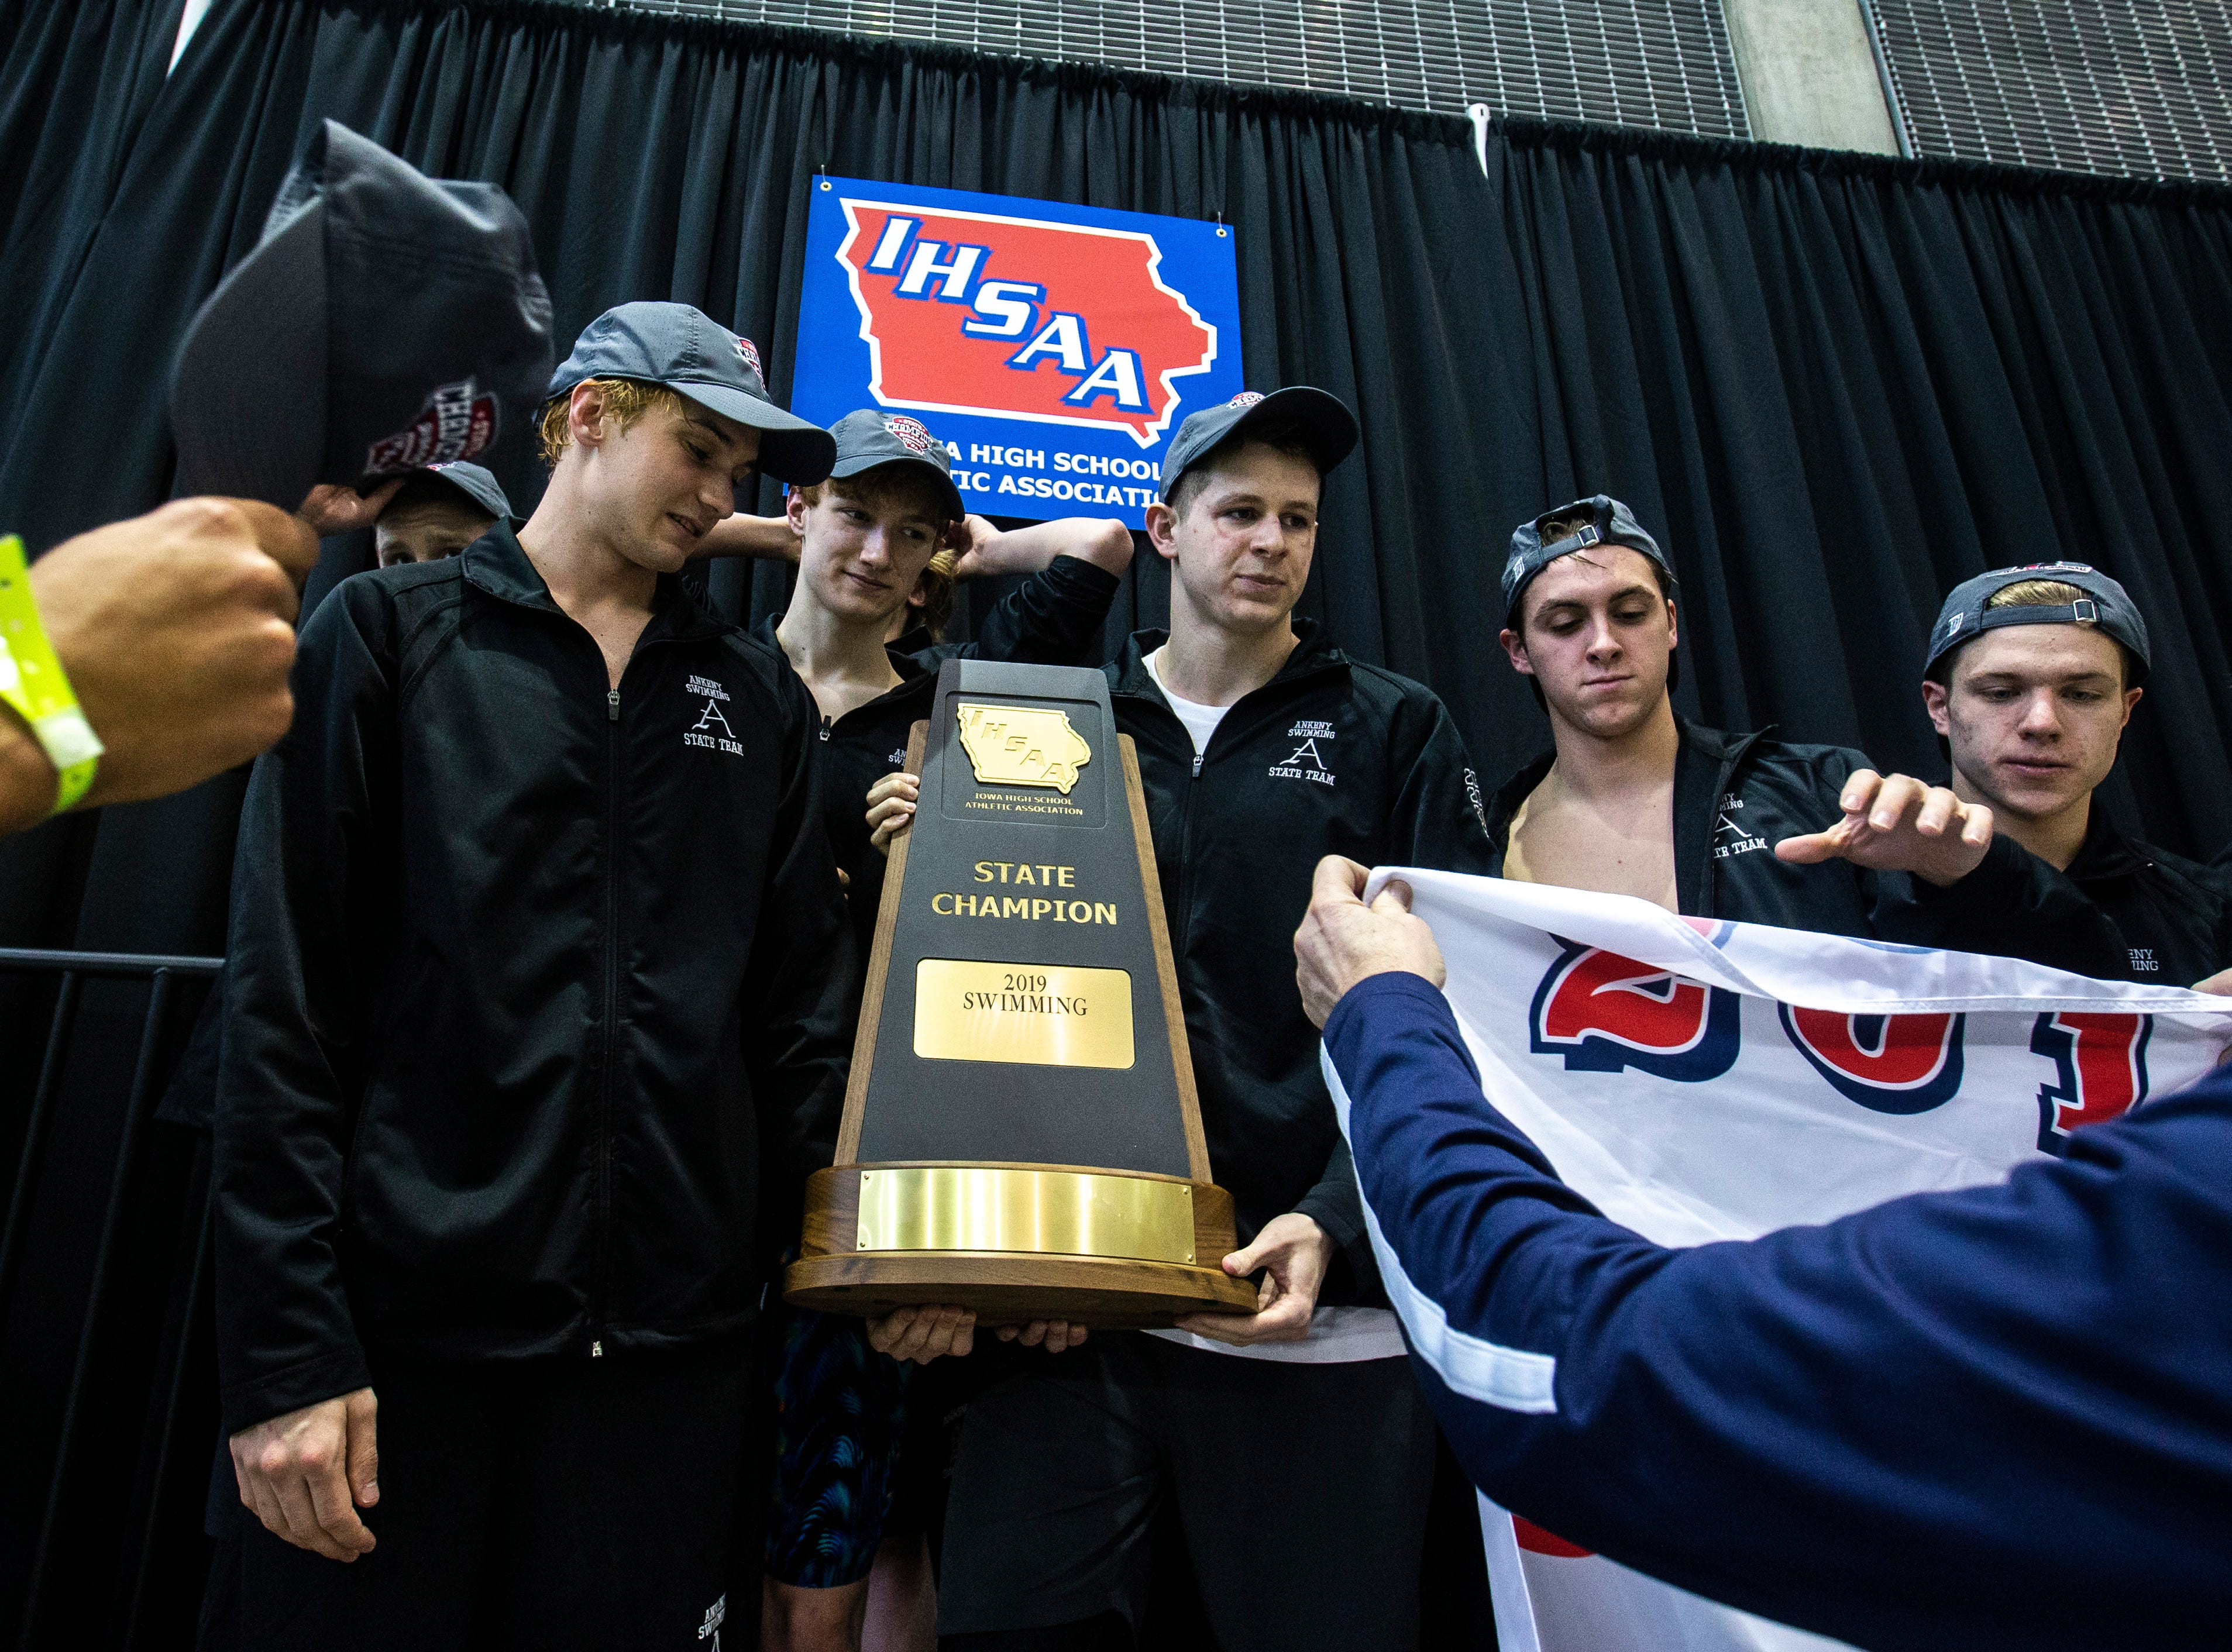 Ankeny swimming team holds their state trophy while receiving hats on the podium during the Iowa boys' state swimming regional championship meet on Saturday, Feb. 9, 2019 at Campus Recreation and Wellness Center on the University of Iowa campus in Iowa City, Iowa.